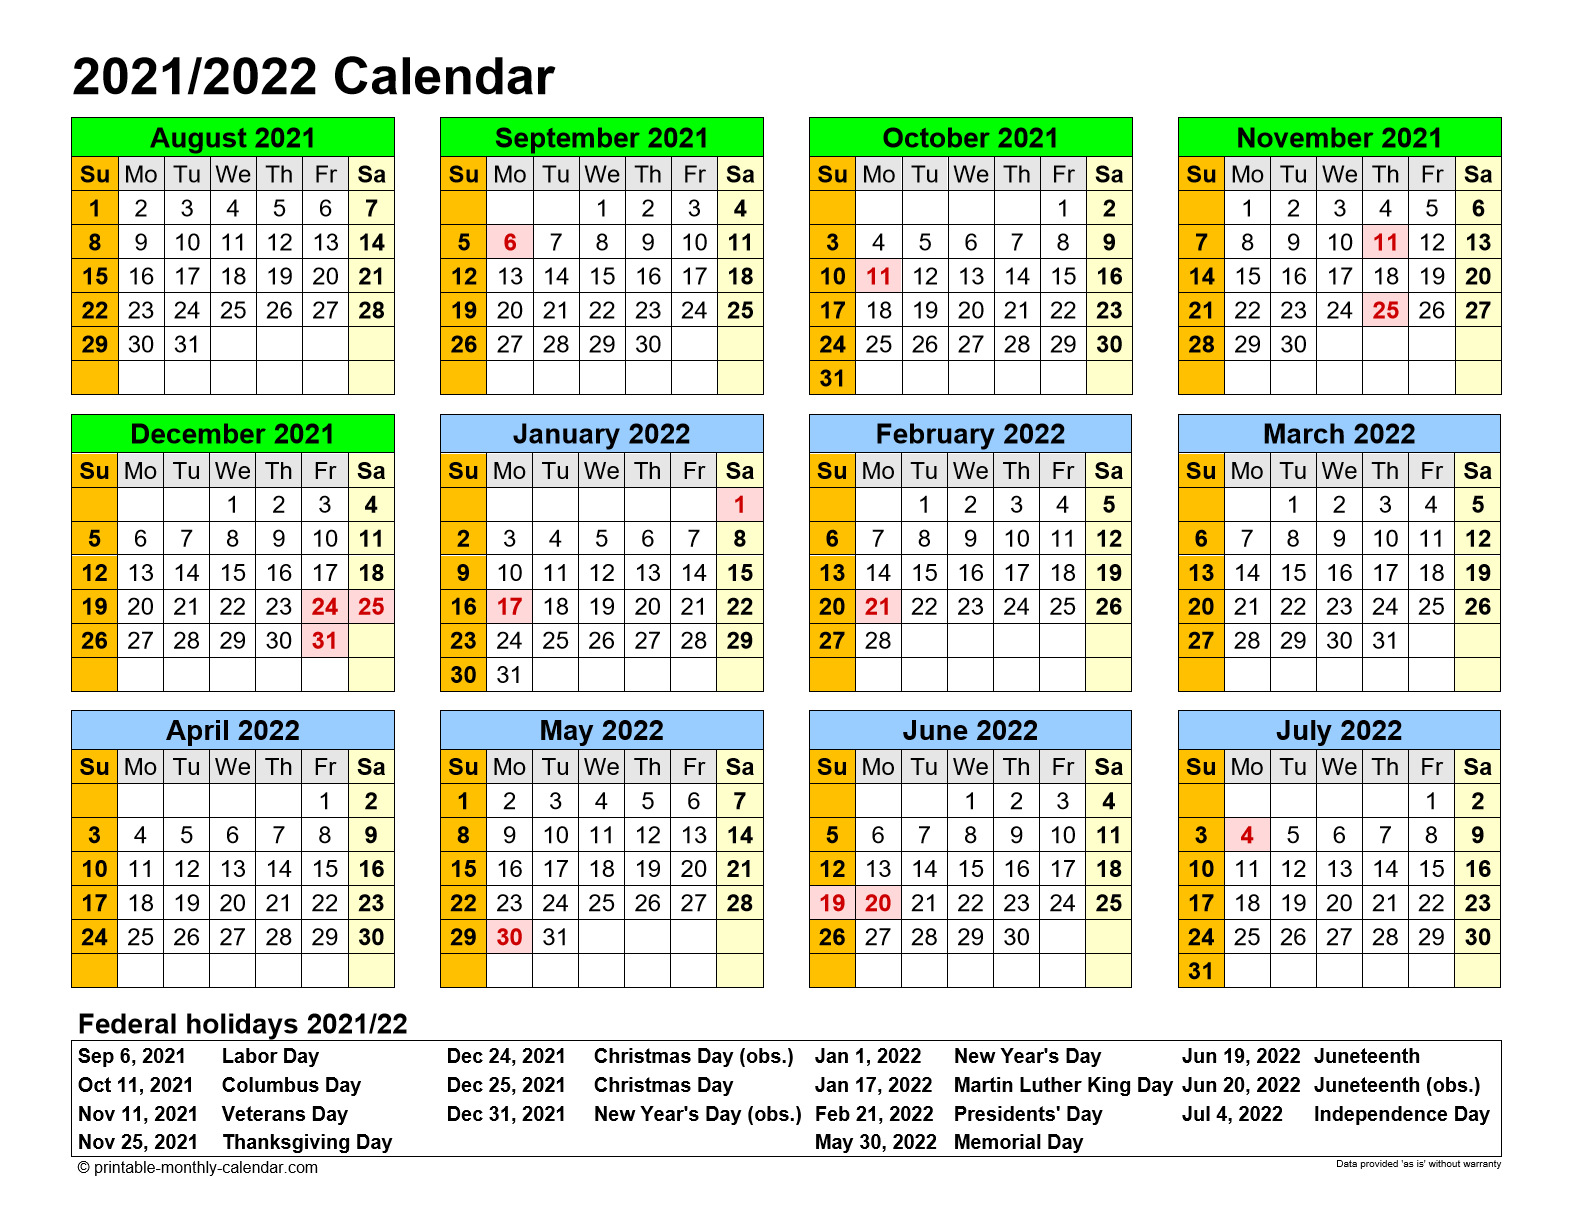 Printable Monthly Calendar August 2021 To June 2022